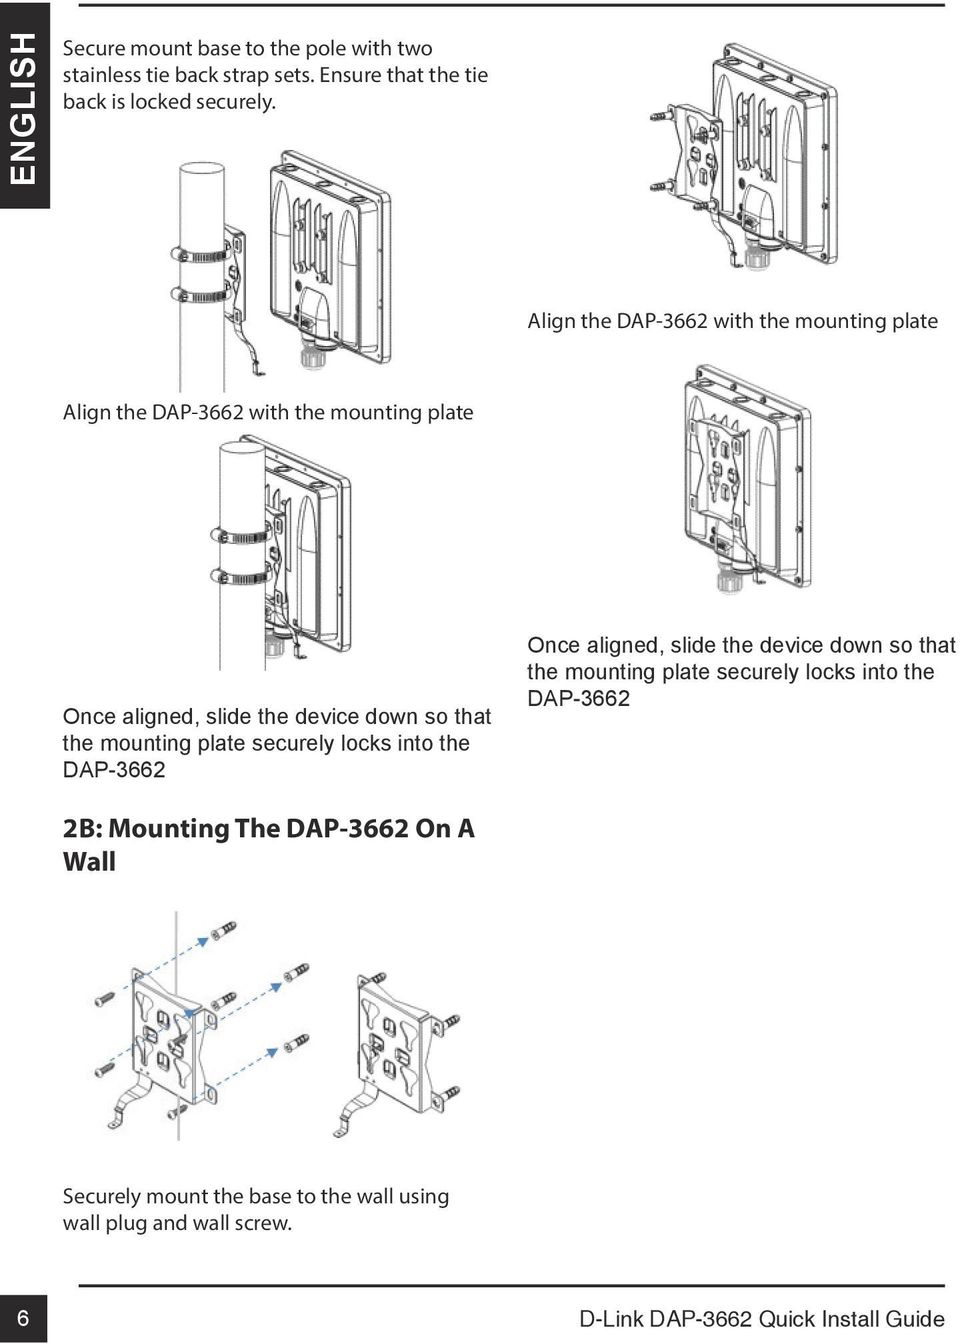 mounting plate securely locks into the DAP-3662 Once aligned, slide the device down so that the mounting plate securely locks into the